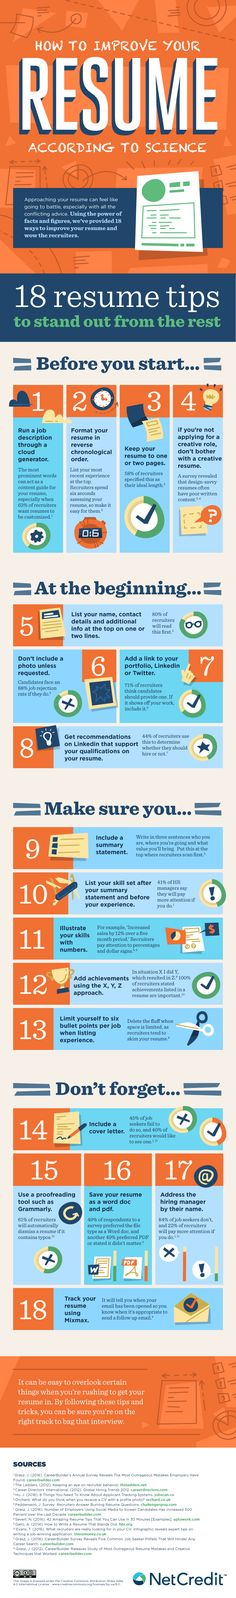 How to Improve Your Resume According to Science #infographic #Resume #Science #Career